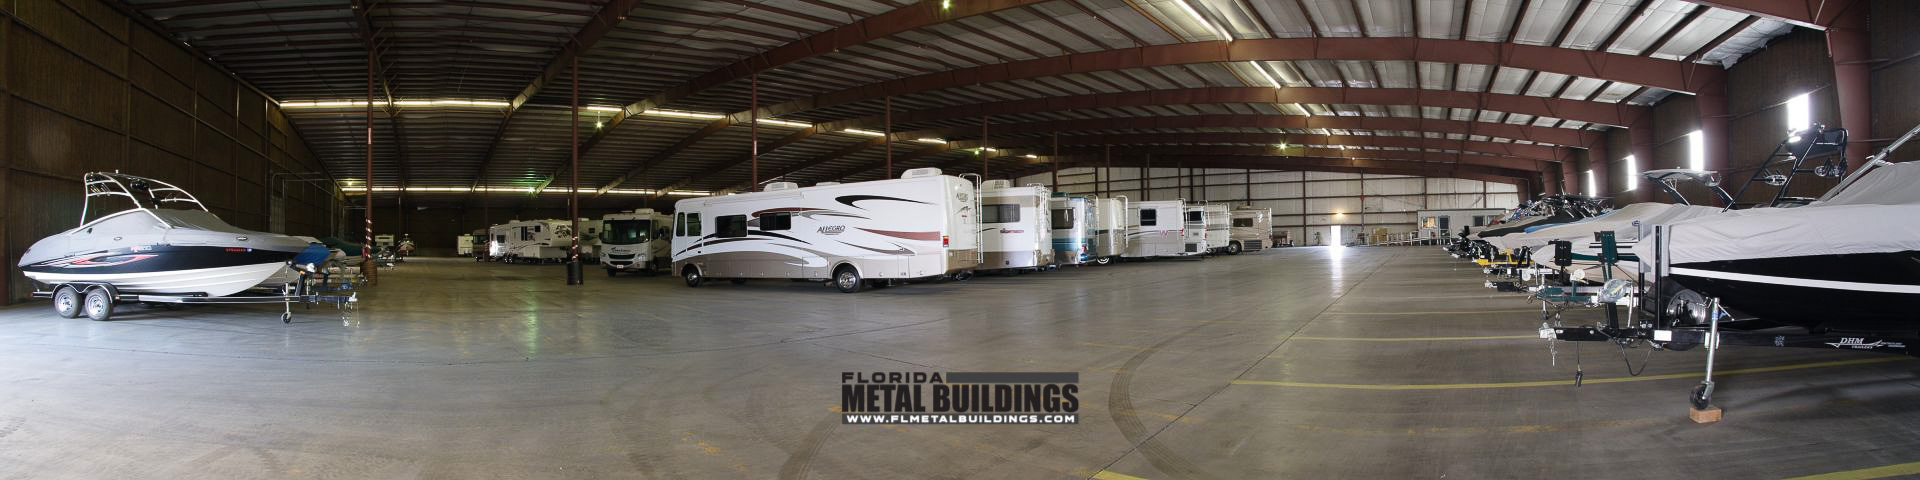 Florida Metal Buildings offers metal Self-Storage and RV/Boat ...